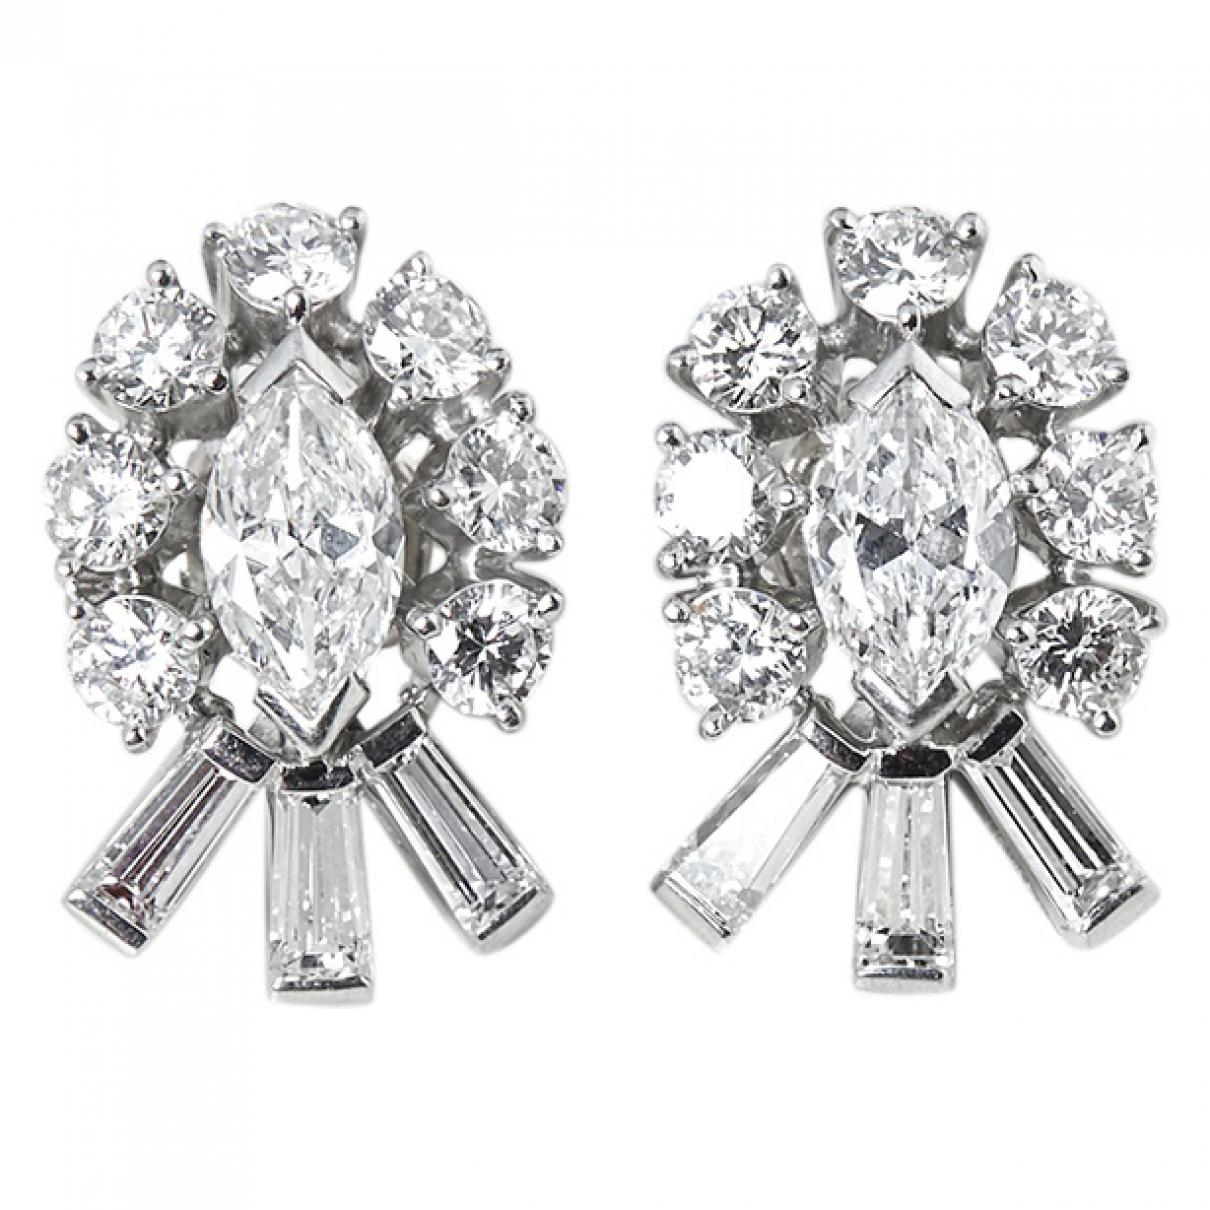 d719cfd4d Tiffany & Co. White Gold Earrings in White - Lyst